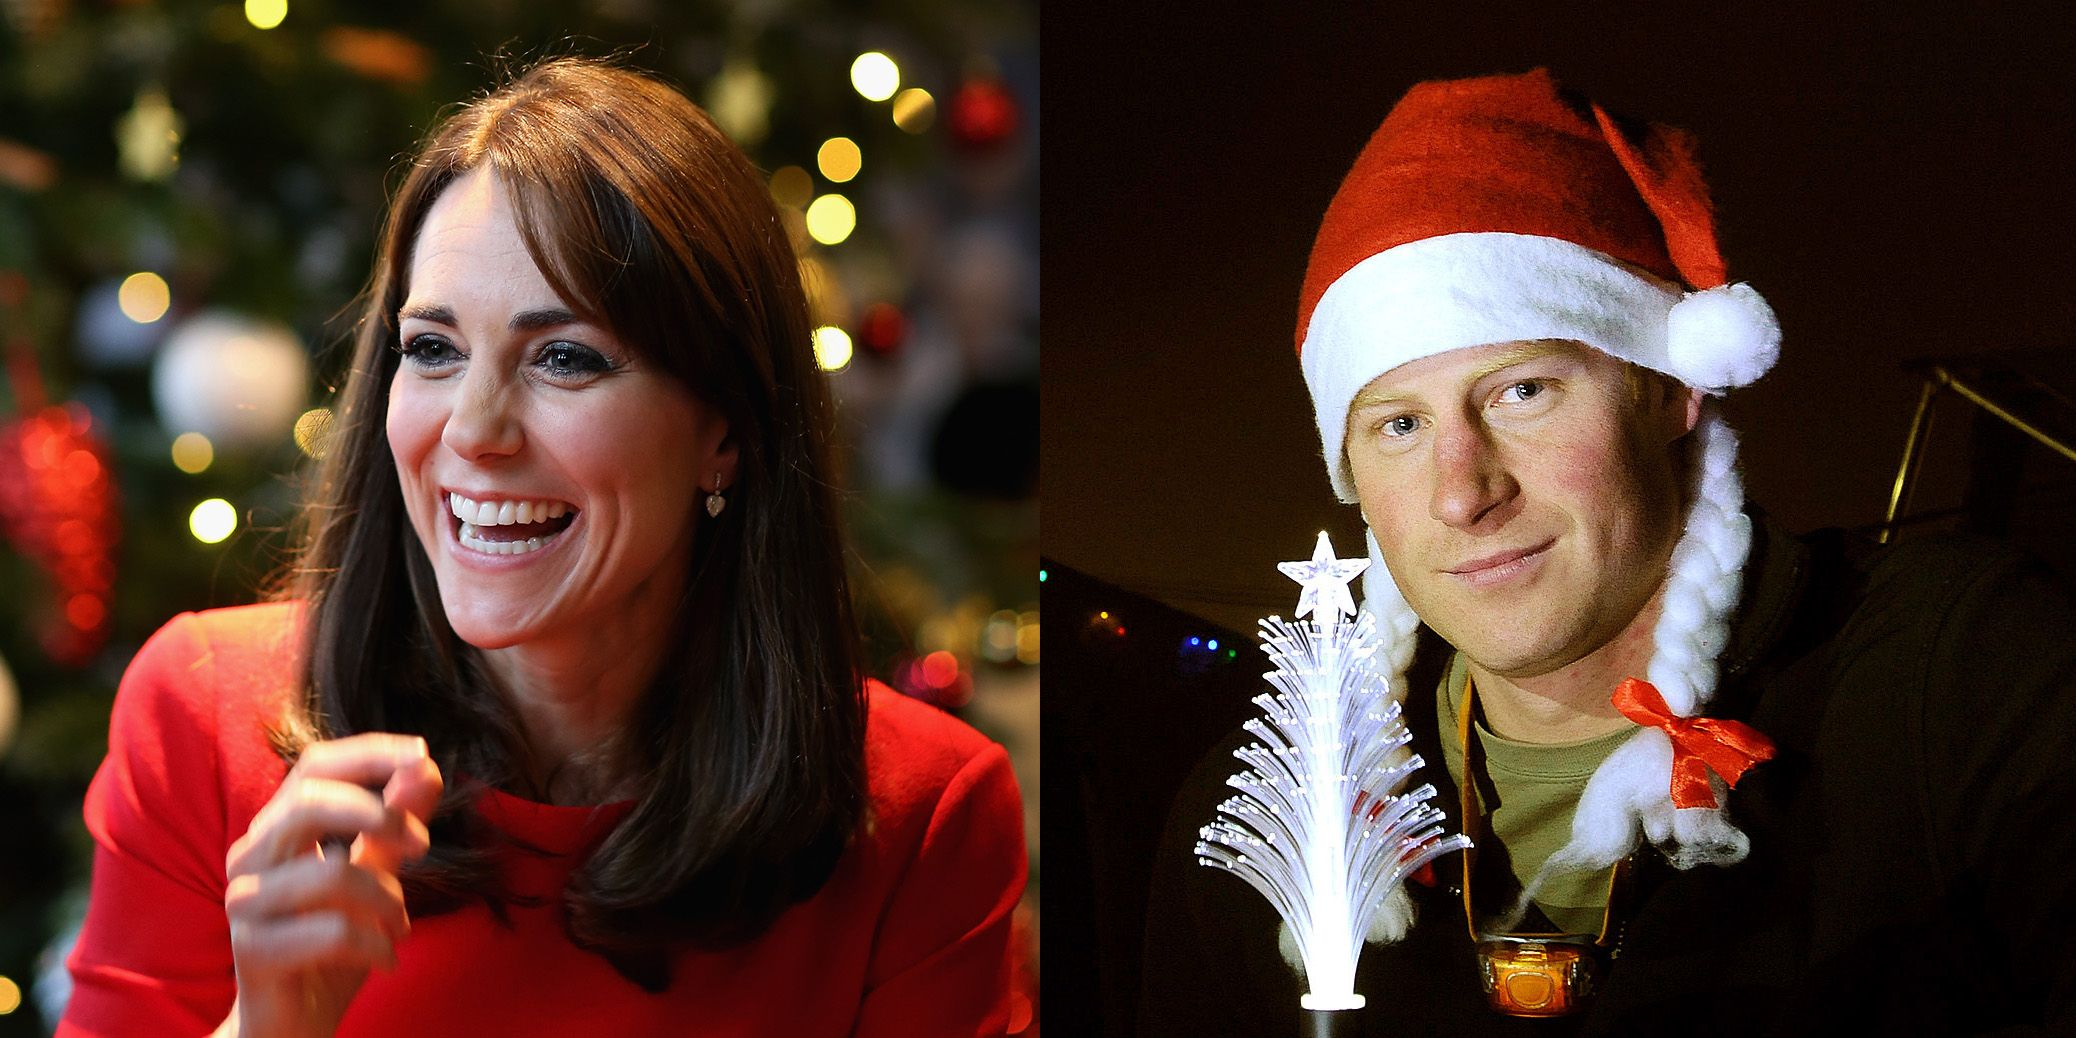 Royal Family Christmas.Royal Family Christmas Traditions The Royal Family Honors